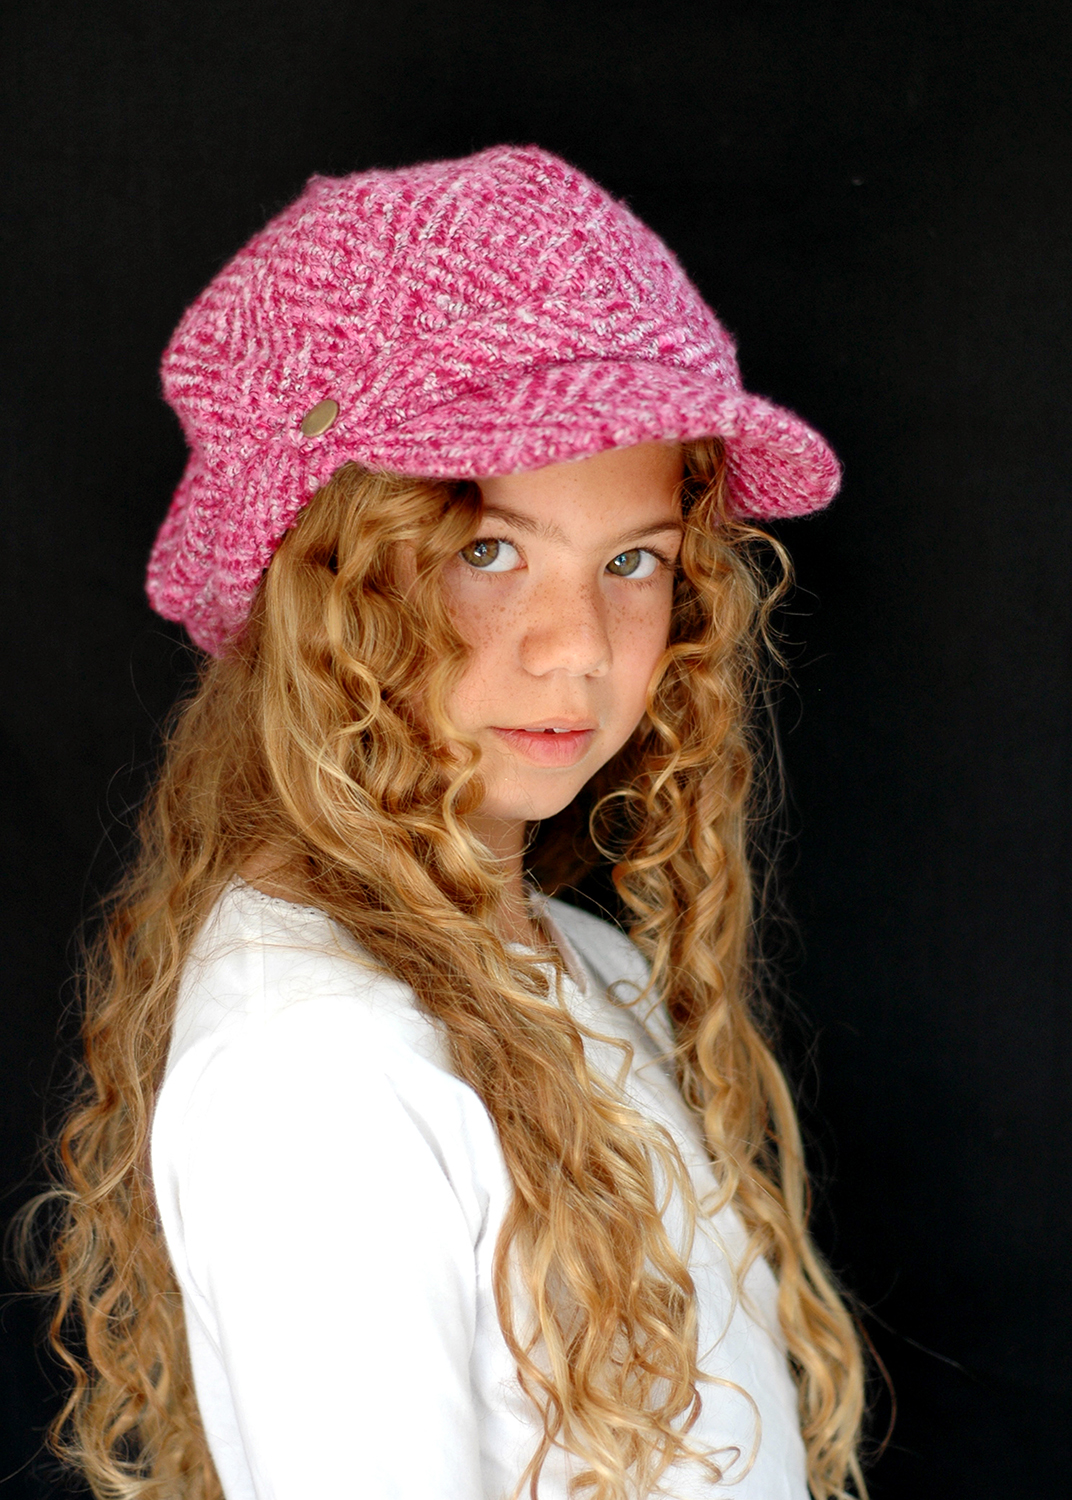 cassis purple hat .jpg